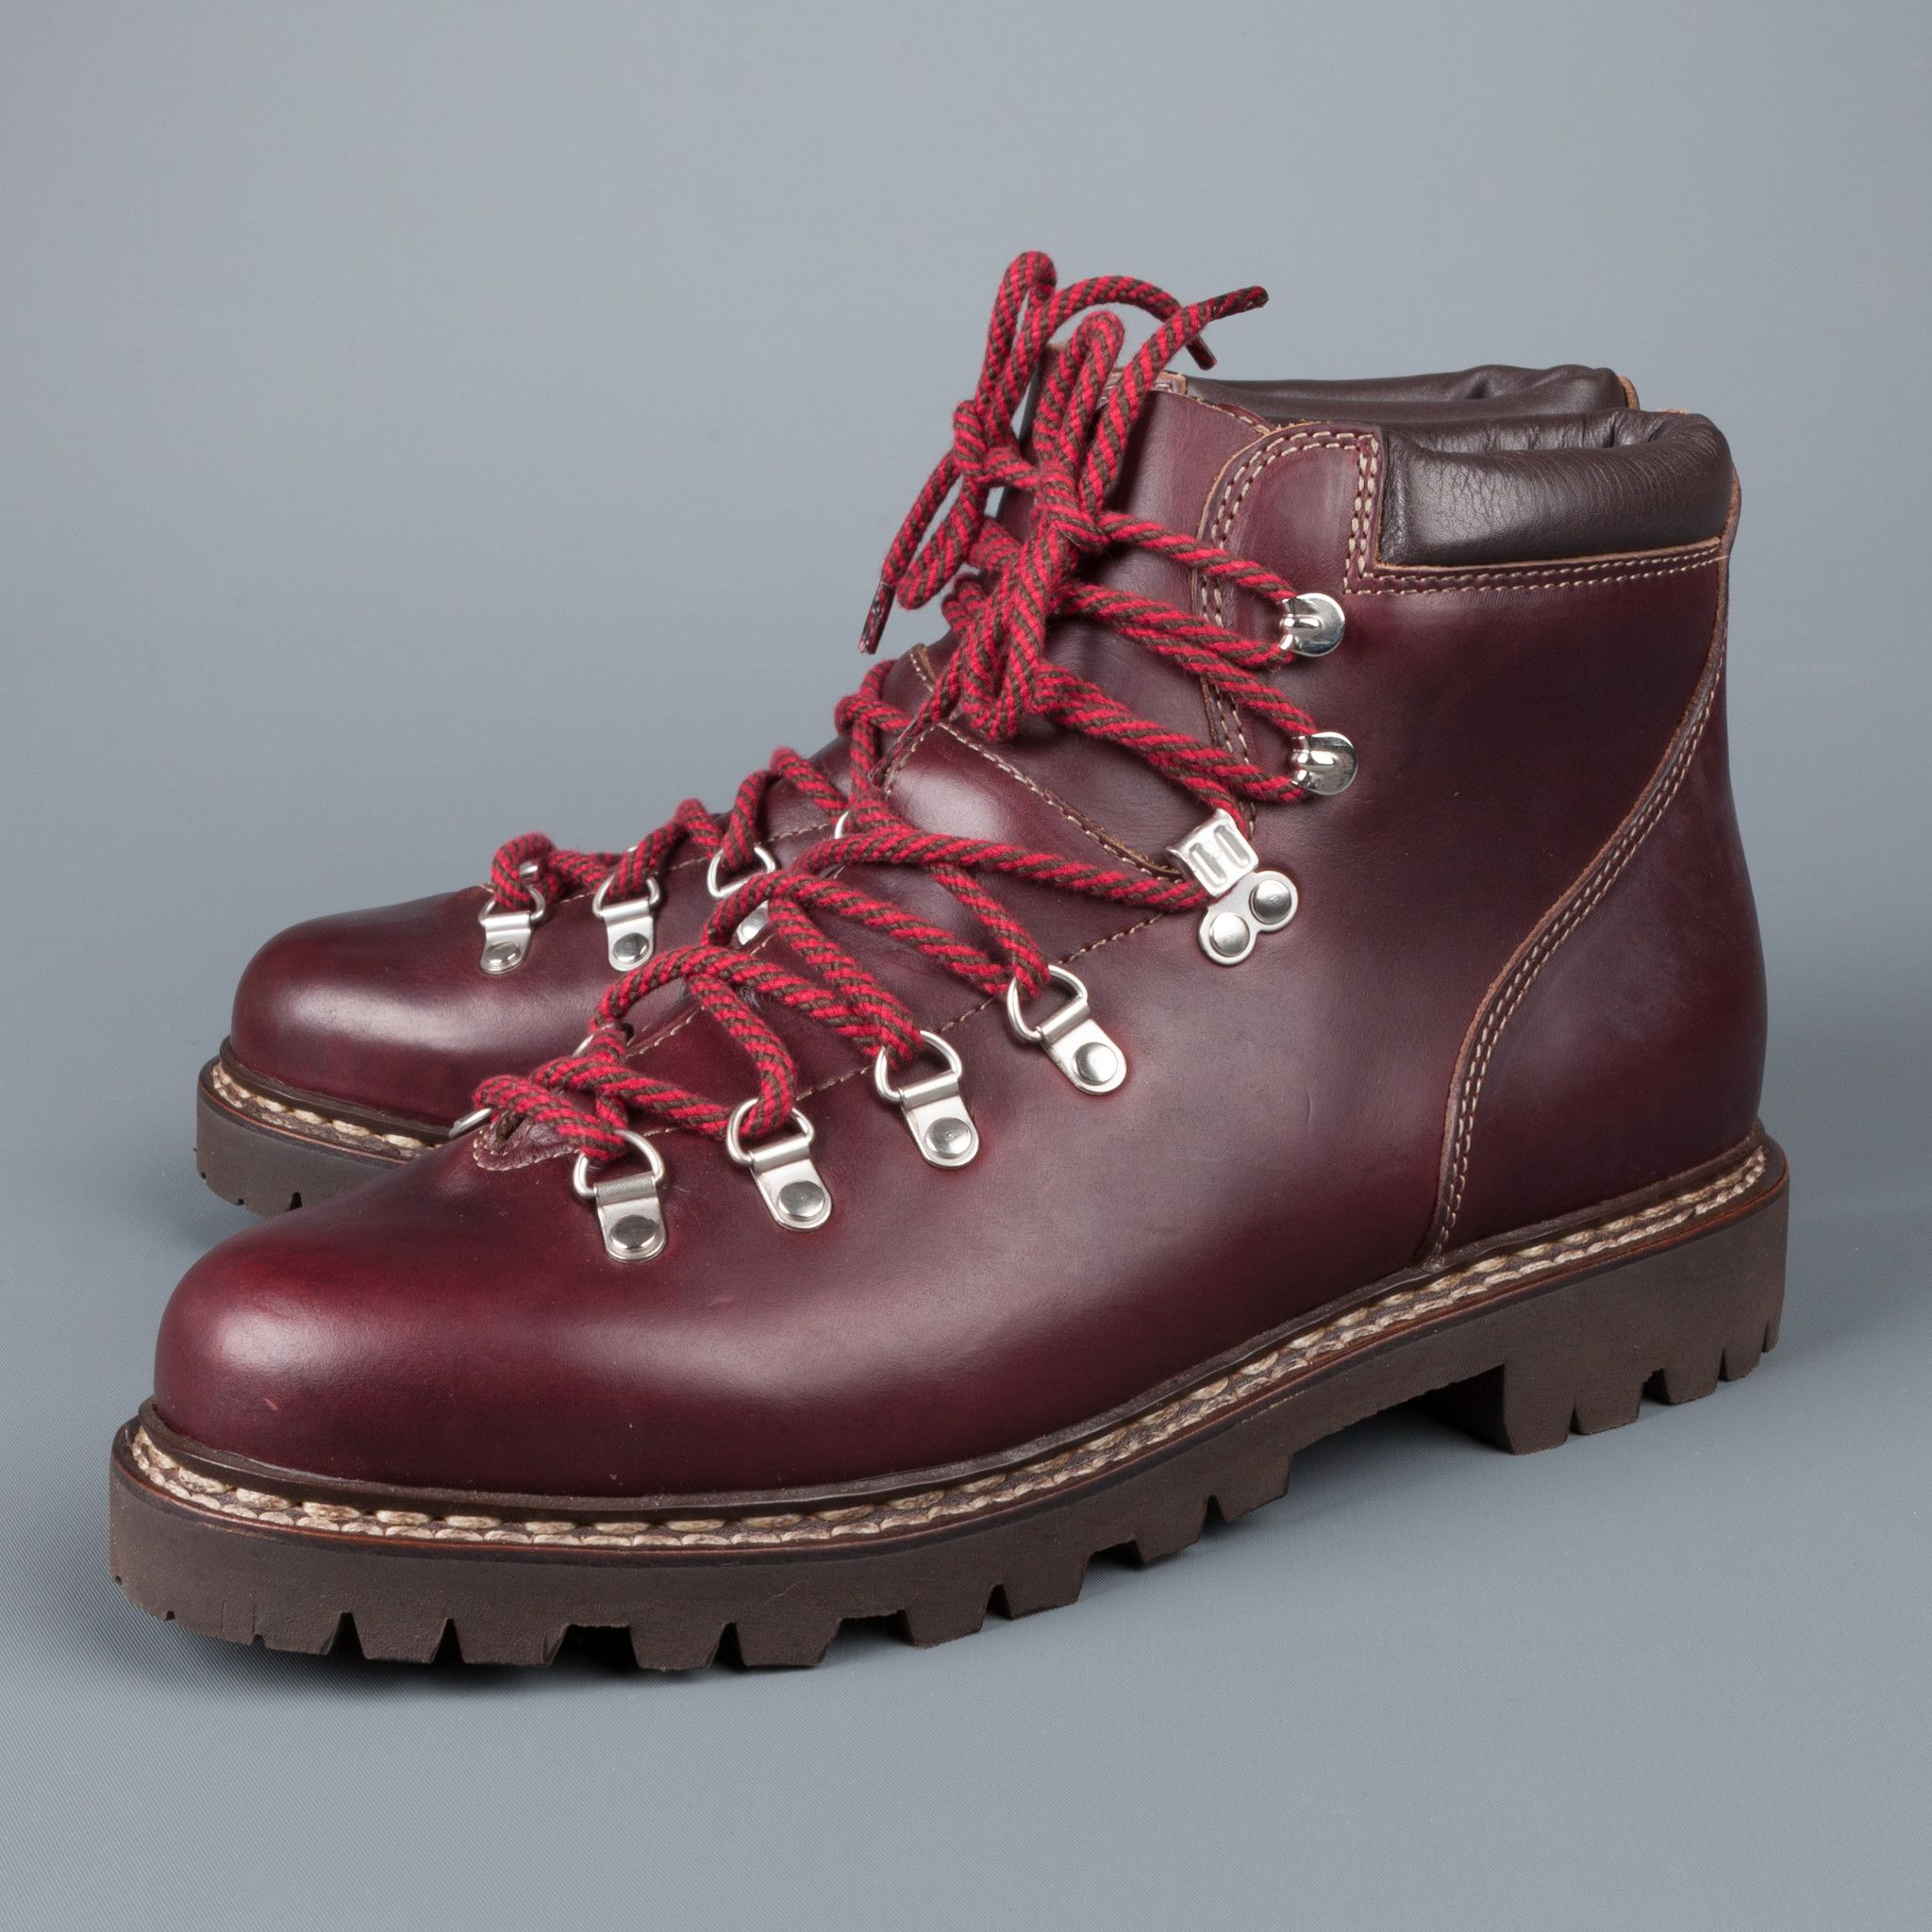 Paraboot Avoriaz Bordeaux | Boots, Leather boots, Hiking boots